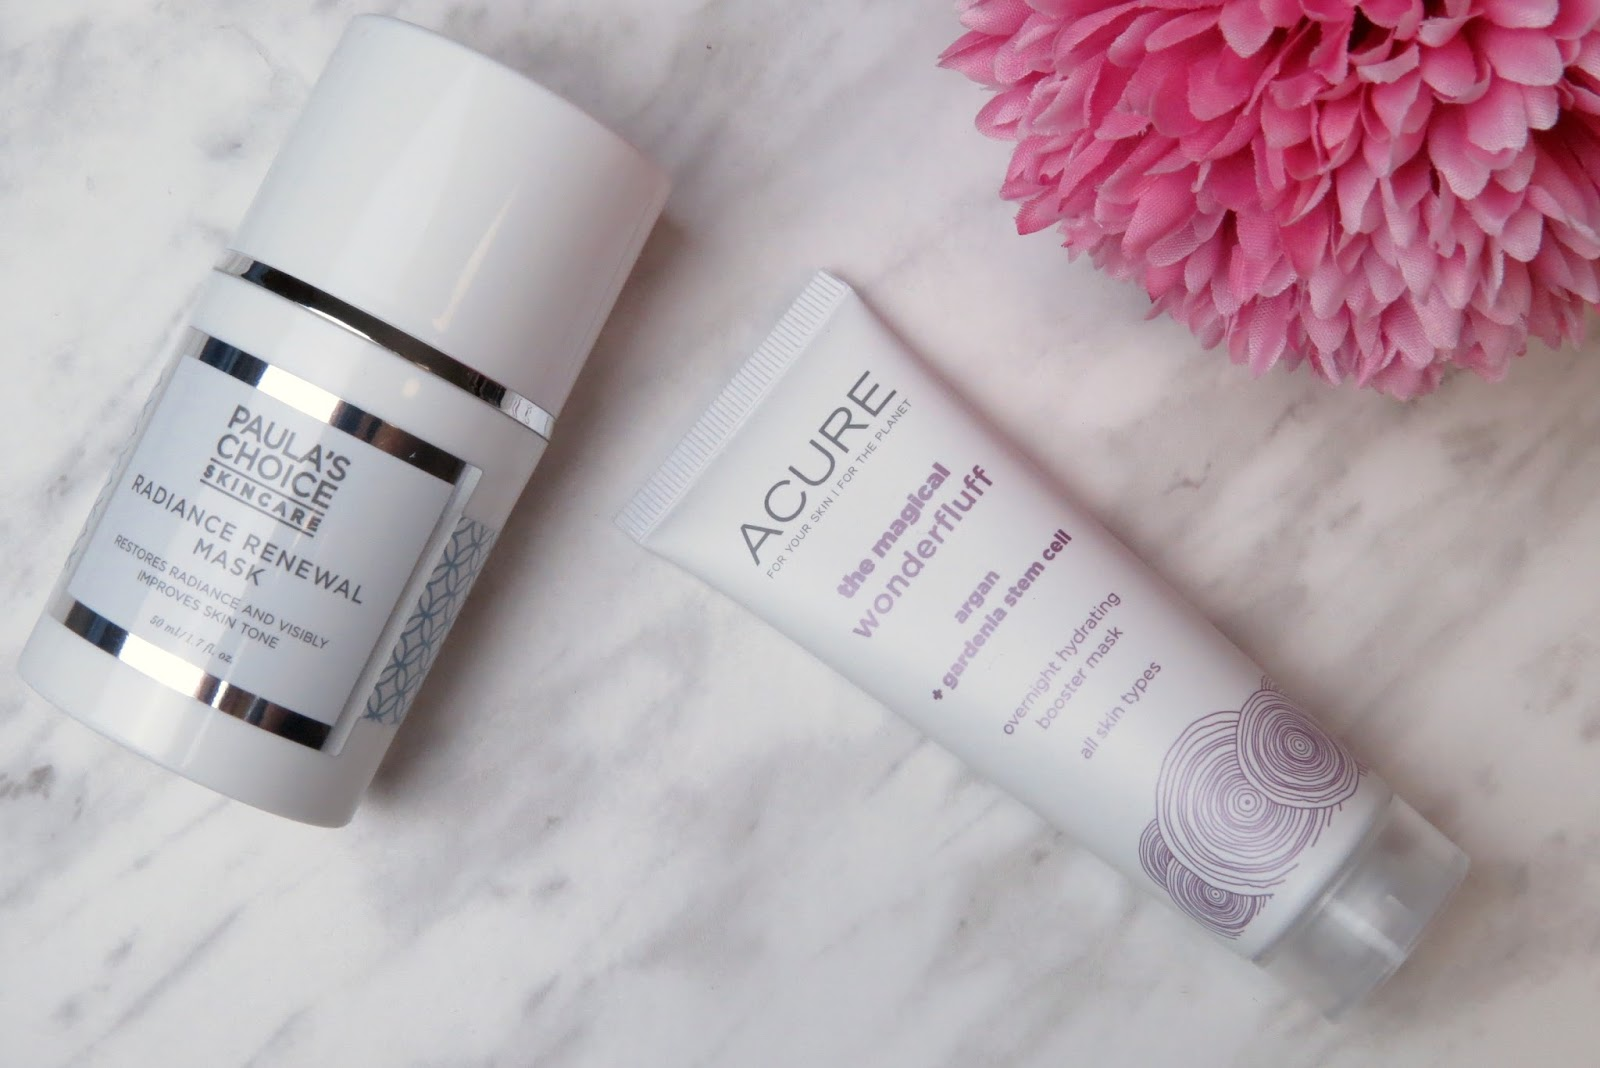 New In: Paula's Choice and Acure Overnight Skincare*